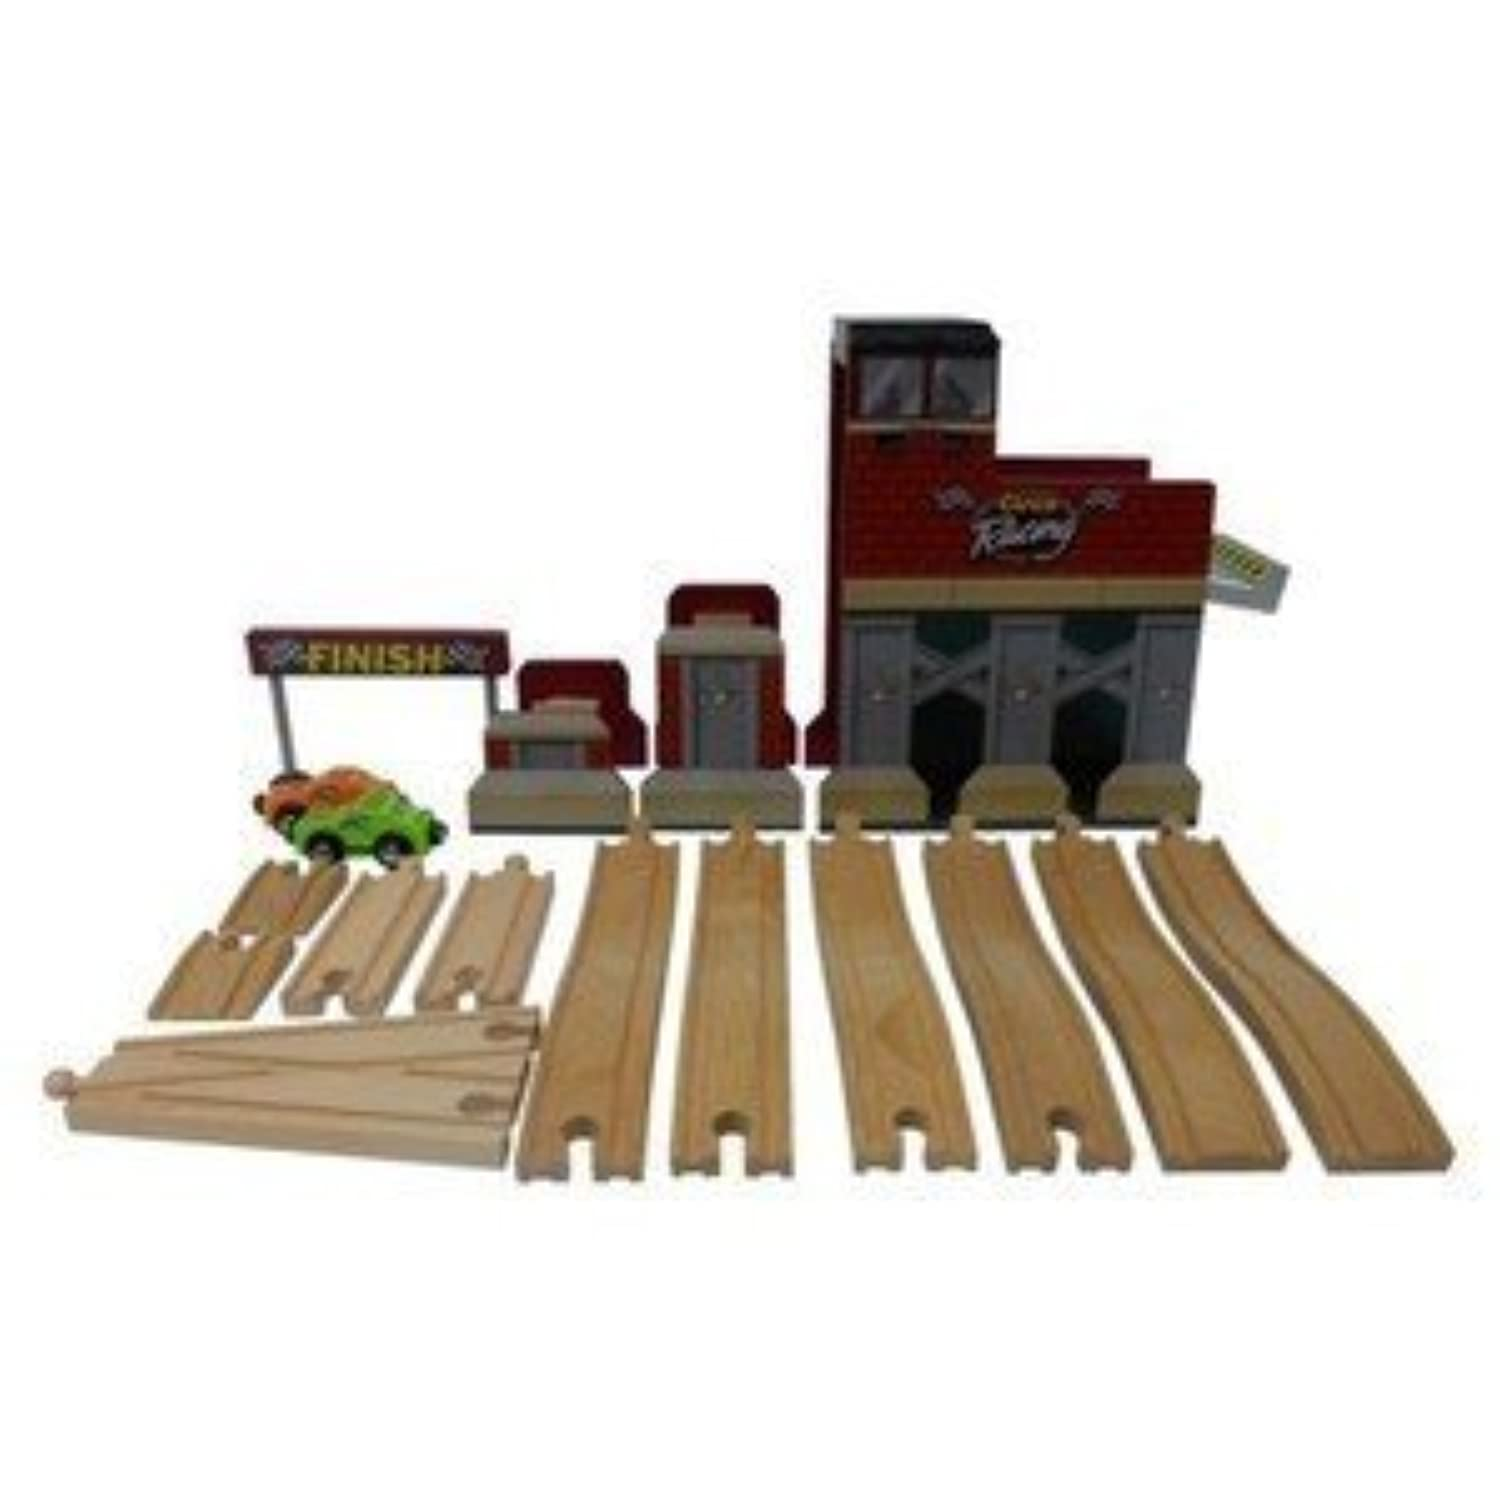 CIRCO RACE 'N CRASH TRAIN SET